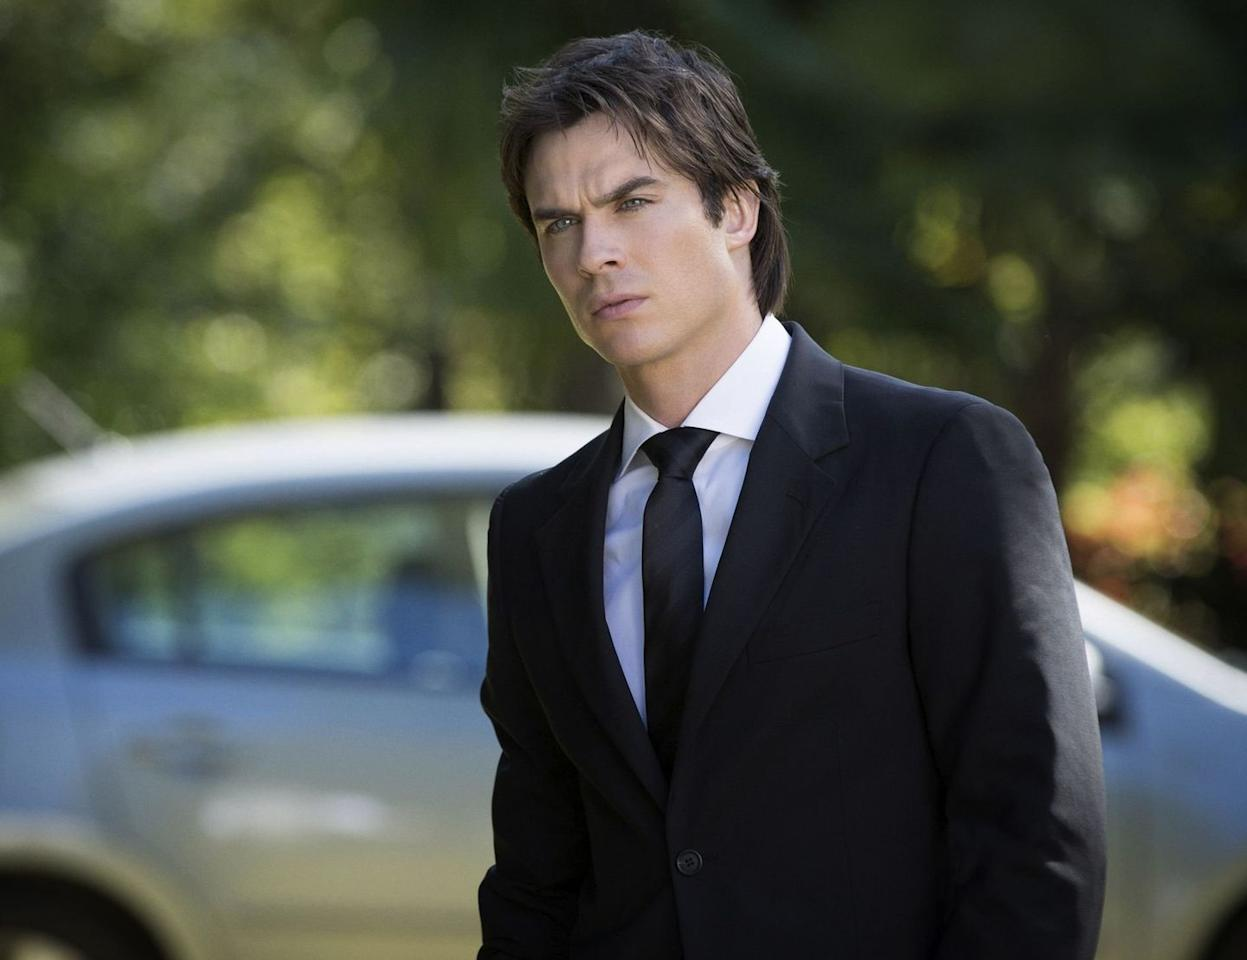 """<p>There's actually been some debate over whether Damon Salvatore (played by <a href=""""https://www.menshealth.com/entertainment/a30520968/ian-somerhalder-vampire-diaries-v-wars-lost-interview/"""" target=""""_blank"""">Ian Somerhalder</a>) is an anti-hero or villain on <em>The Vampire Diaries.</em> But the Damon we meet in season one—a ruthless, manipulative vampire with a thousand-years old unrequited love and vendetta against his brother—is not the Damon we know by the end of the series—a human who has tried to make amends and sacrifice himself to save that same brother and the town of Mystic Falls from burning in literal hell. </p><p>Sure, he still has that charming bad boy thing going on, but over the course of eight seasons, he learns to be better and to show the good parts of himself that he kept hidden to avoid having to live up to other people's expectations. But it's not all at once, and in the end he doesn't just become like his self-righteous brother. He's still himself, but with a moral compass. </p><p>This redemption, of course, is because of his love for Elena. And the back-and-forth between these two characters in particular, as Damon ends up striving to be someone deserving of Elena, is what both endears and excites you about his character. You can't help but root for him.<em> —Stephanie Castillo </em></p><p><a class=""""body-btn-link"""" href=""""https://www.amazon.com/Vampire-Diaries-Complete-First-Season/dp/B002NHGG92/ref=sr_1_1_sspa?keywords=the+vampire+diaries&qid=1585228437&s=instant-video&sr=1-1-spons&psc=1&spLa=ZW5jcnlwdGVkUXVhbGlmaWVyPUExNThOSzcxOVBDRDRZJmVuY3J5cHRlZElkPUEwNTIwMjI1M0hTWUdUNzNMRUlTWSZlbmNyeXB0ZWRBZElkPUEwODg3MDUyMzdRS1VJWFo5TDlYRyZ3aWRnZXROYW1lPXNwX2F0ZiZhY3Rpb249Y2xpY2tSZWRpcmVjdCZkb05vdExvZ0NsaWNrPXRydWU%3D&tag=syn-yahoo-20&ascsubtag=%5Bartid%7C2139.g.31928224%5Bsrc%7Cyahoo-us"""" target=""""_blank"""">Stream <em>The Vampire Diaries </em>Here</a><em></em></p>"""